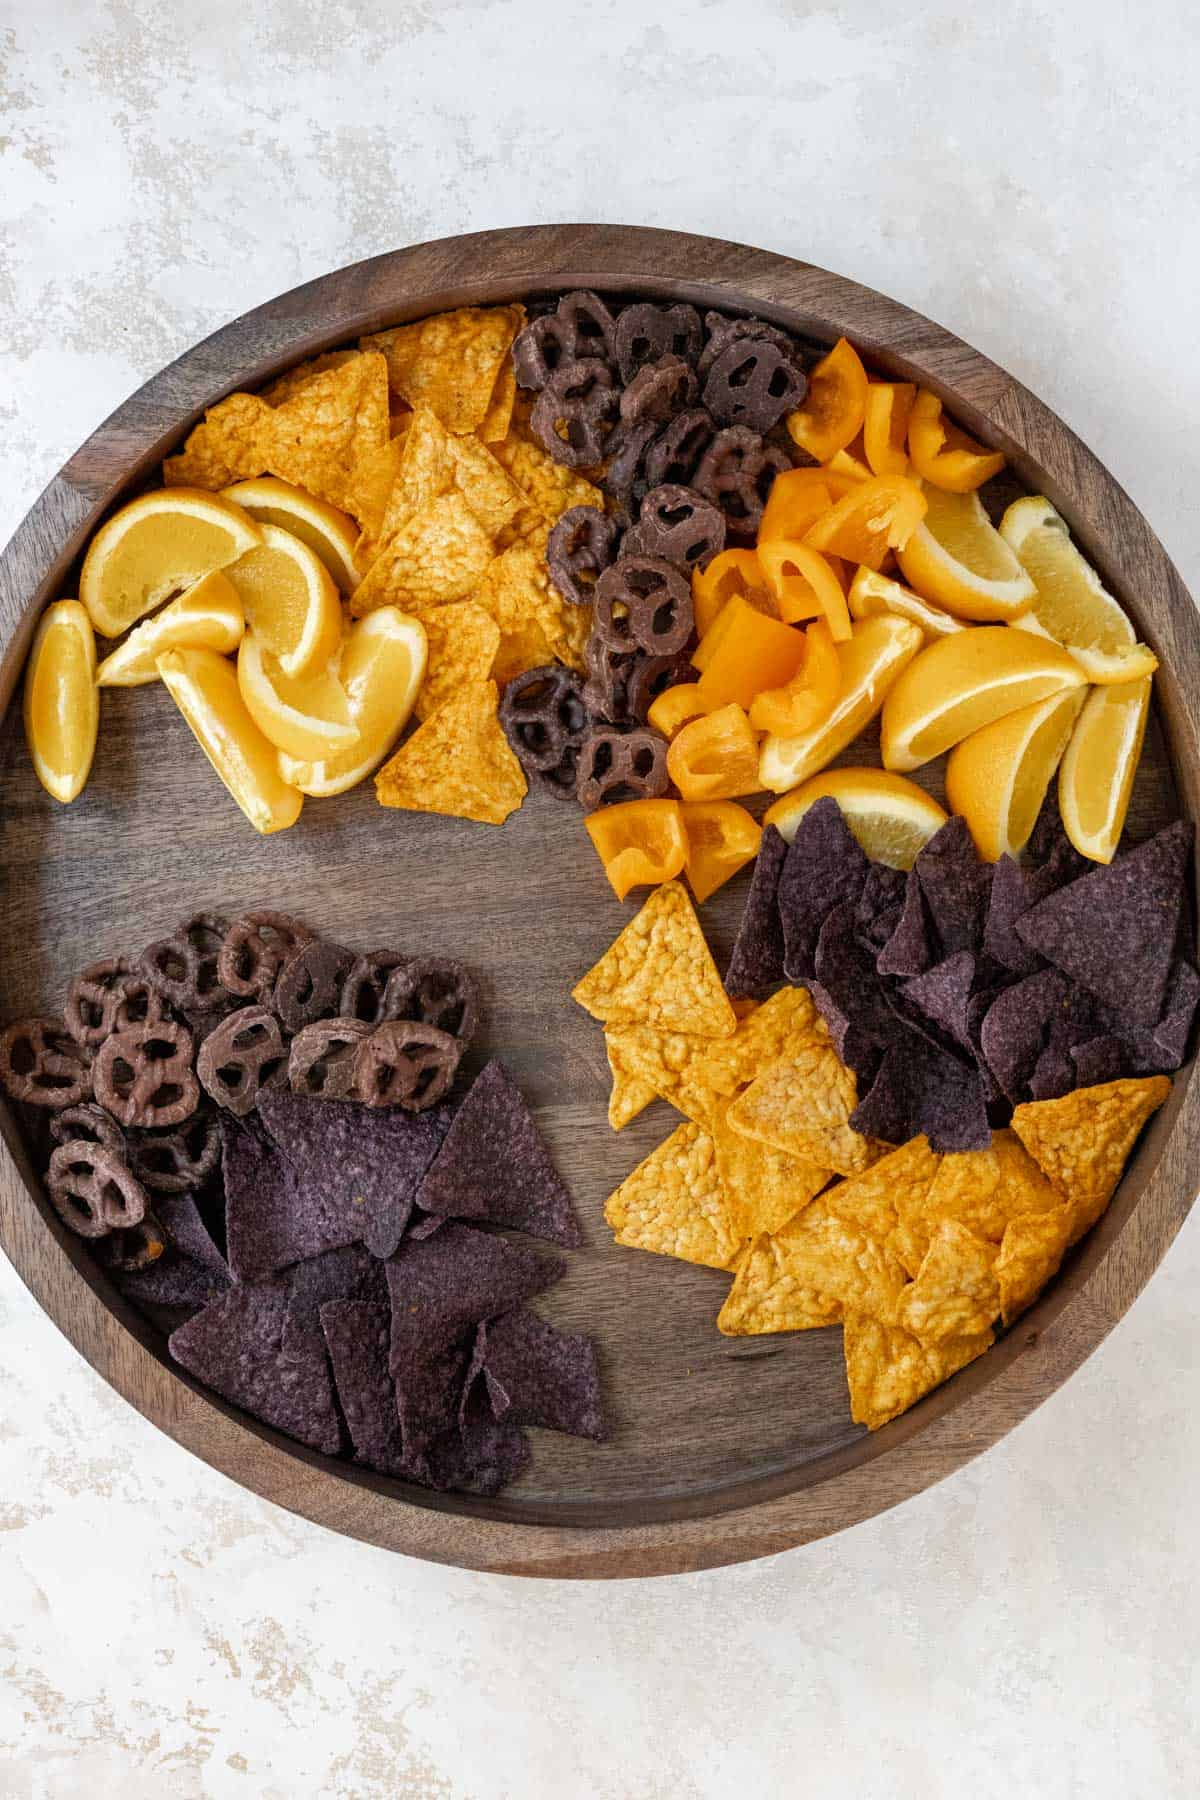 Oranges, chips, orange bell peppers, and chocolate covered pretzels arranged on a wooden board.